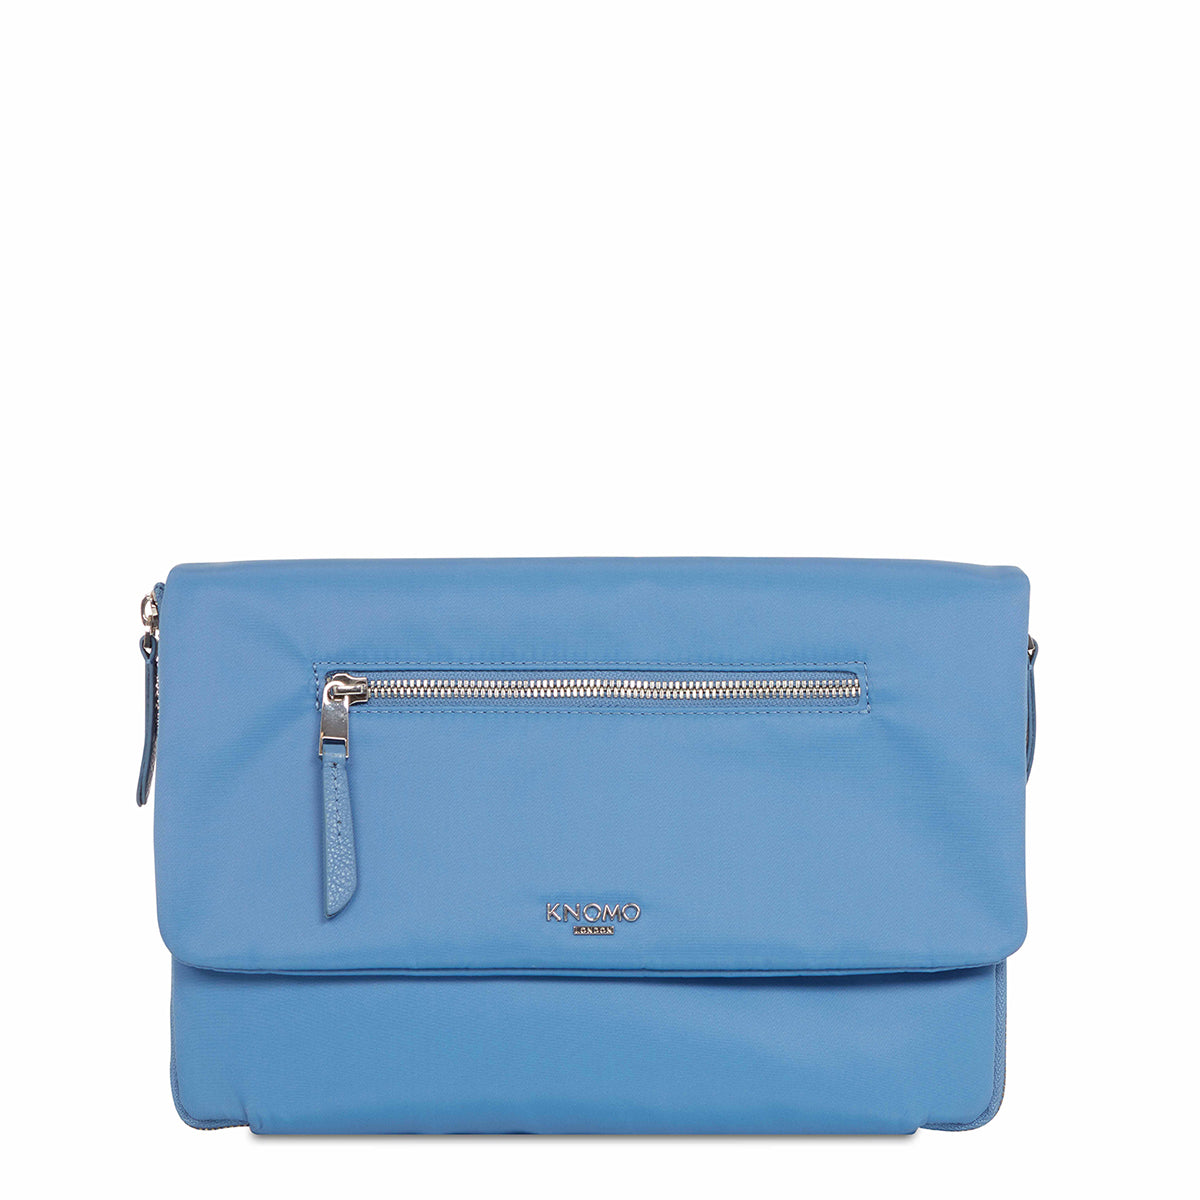 "Elektronista Clutch / Shoulder Bag 10"" (NO POWER) -  Cornflower blue 